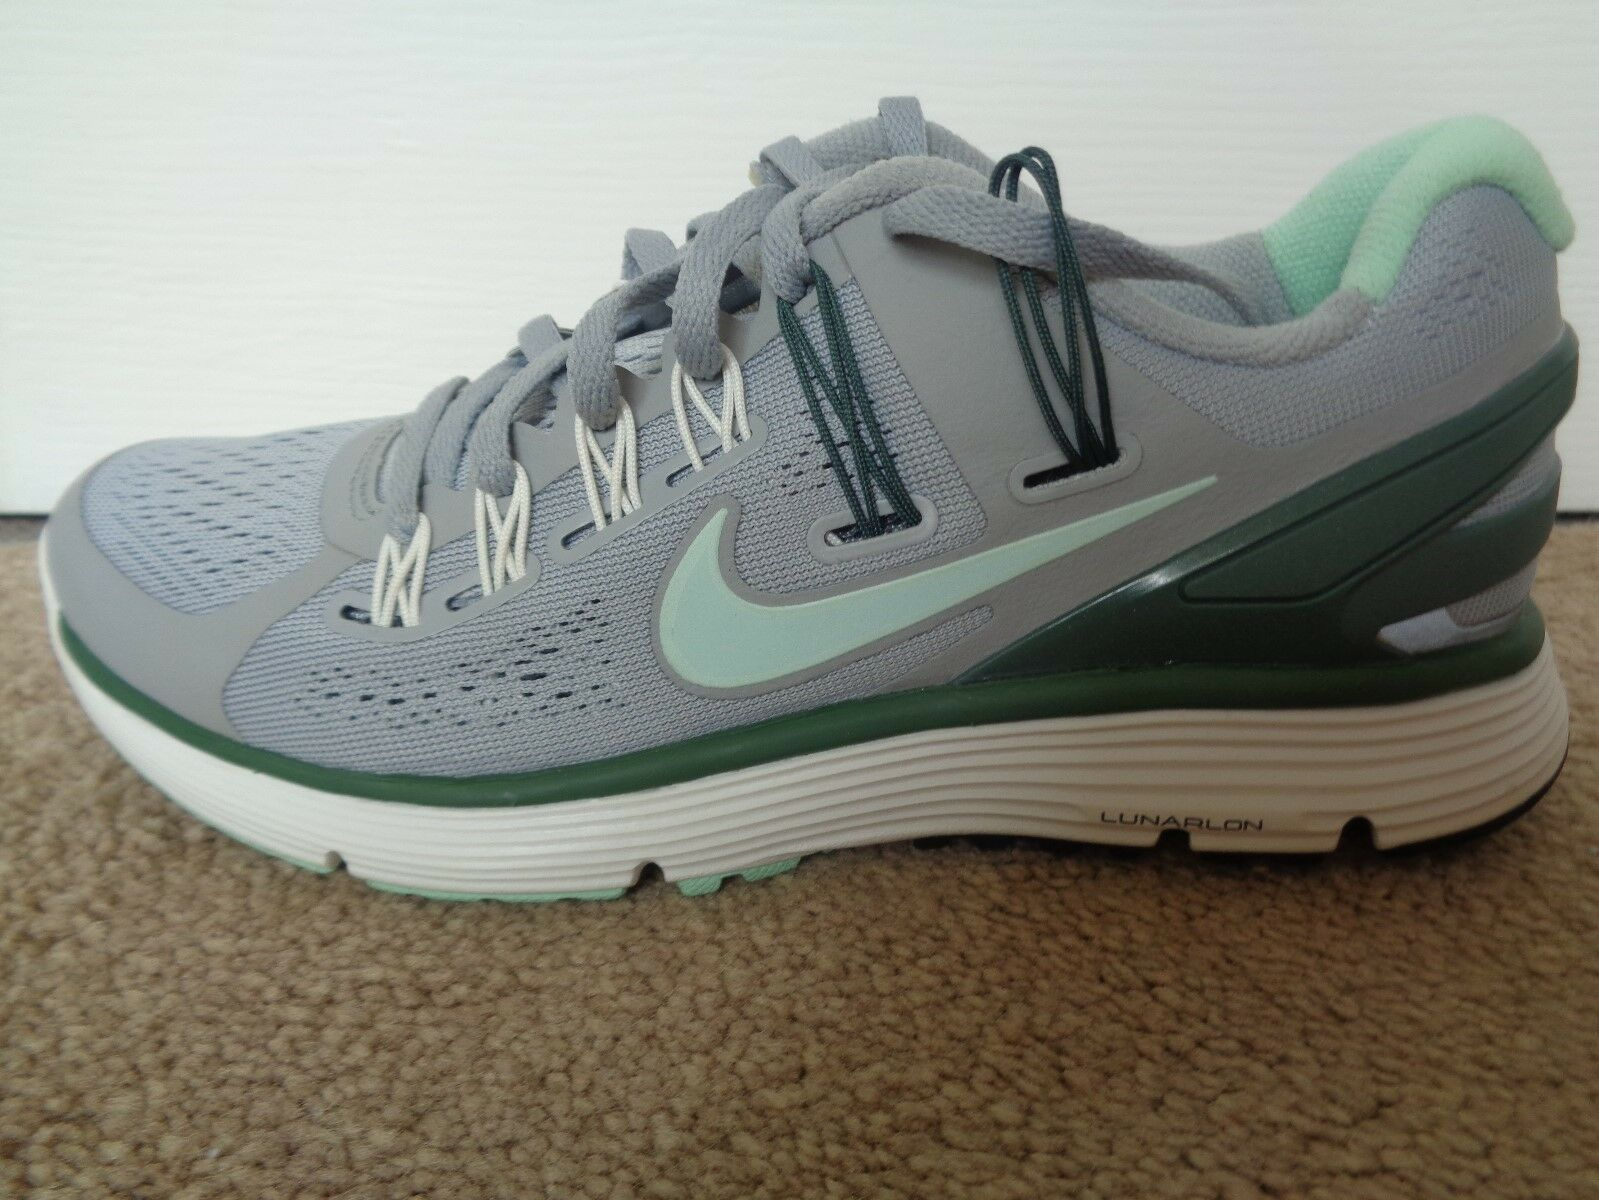 Nike Lunareclipse Lunareclipse Nike 3 wmns trainers schuhe 555398 033 uk 3.5 eu 36.5 us 6 NEW+BOX 35f70e